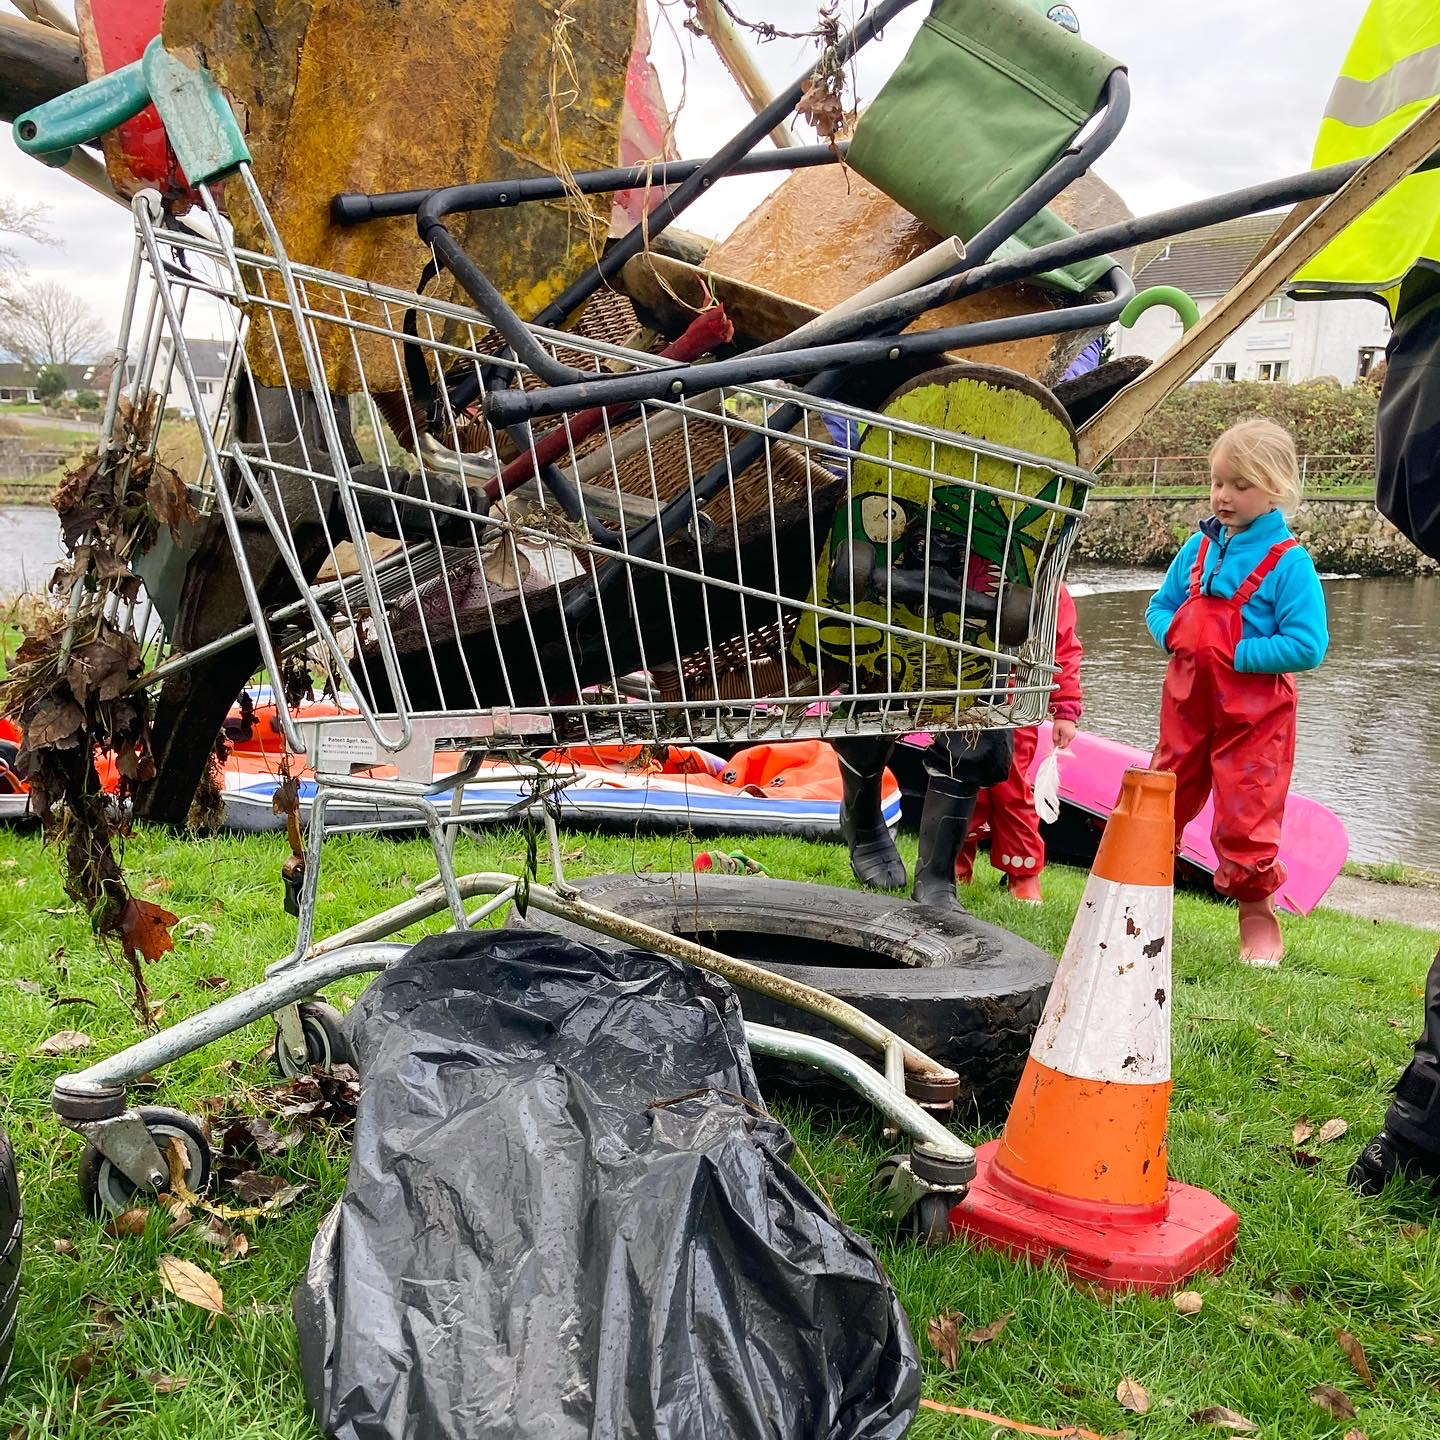 Just some of the rubbish removed from the River Kent, including a shopping trolley, a tyre, and a traffic cone.